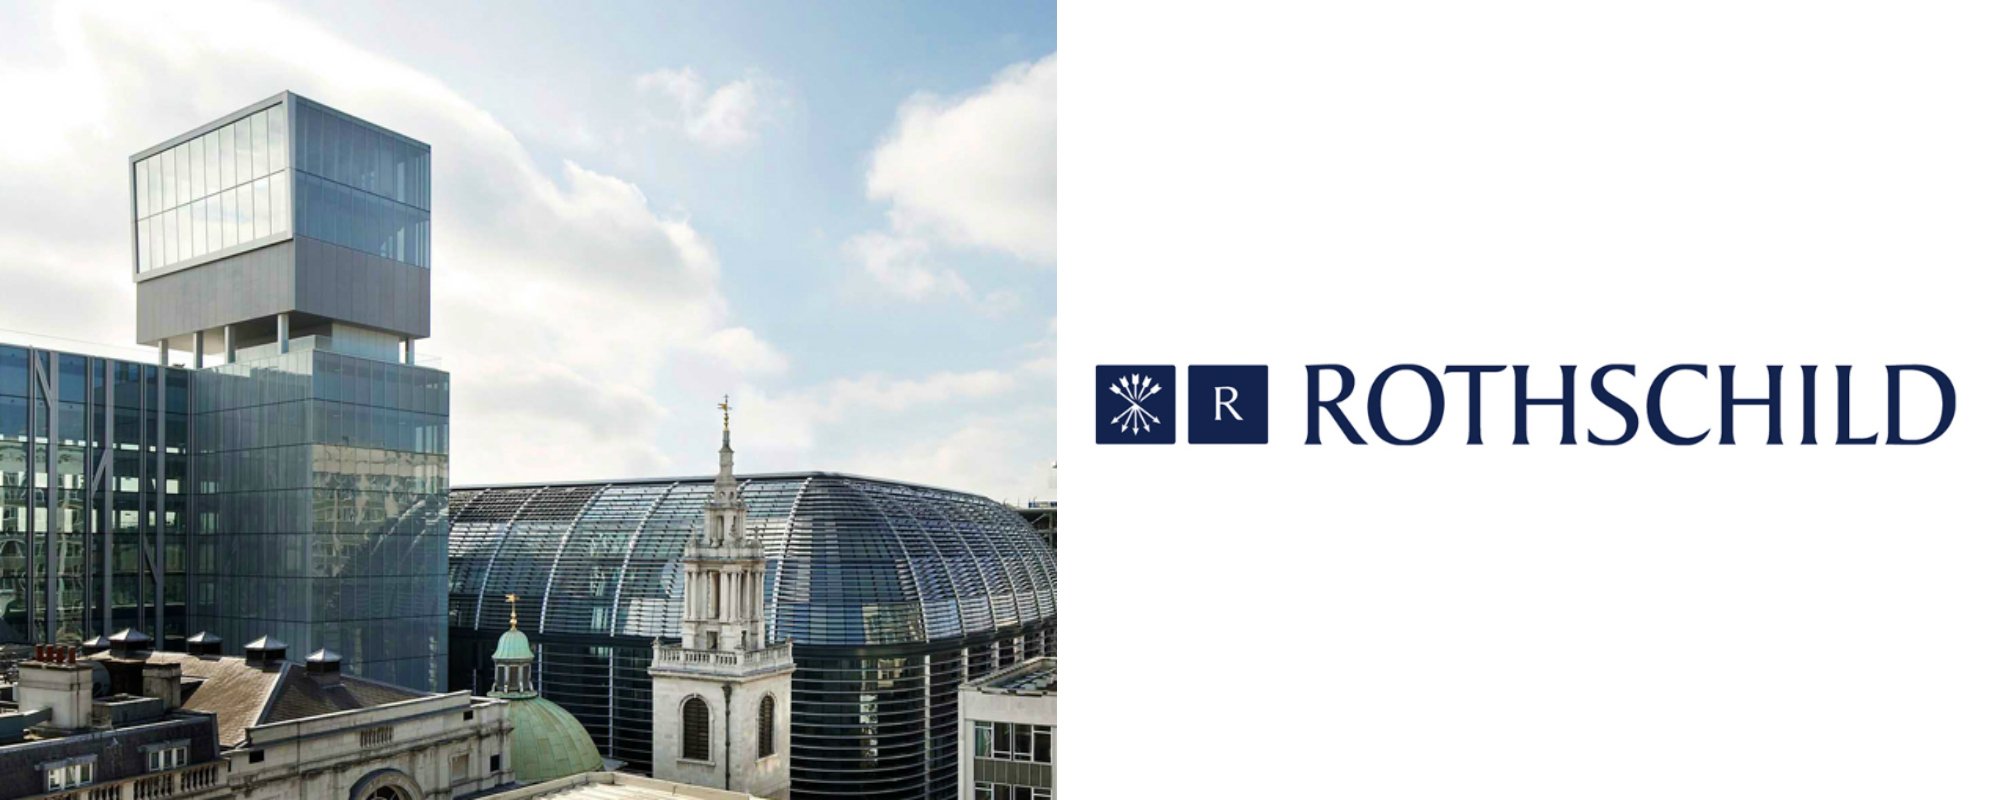 rothschild Most Powerful M&A Firms in the world best upslide